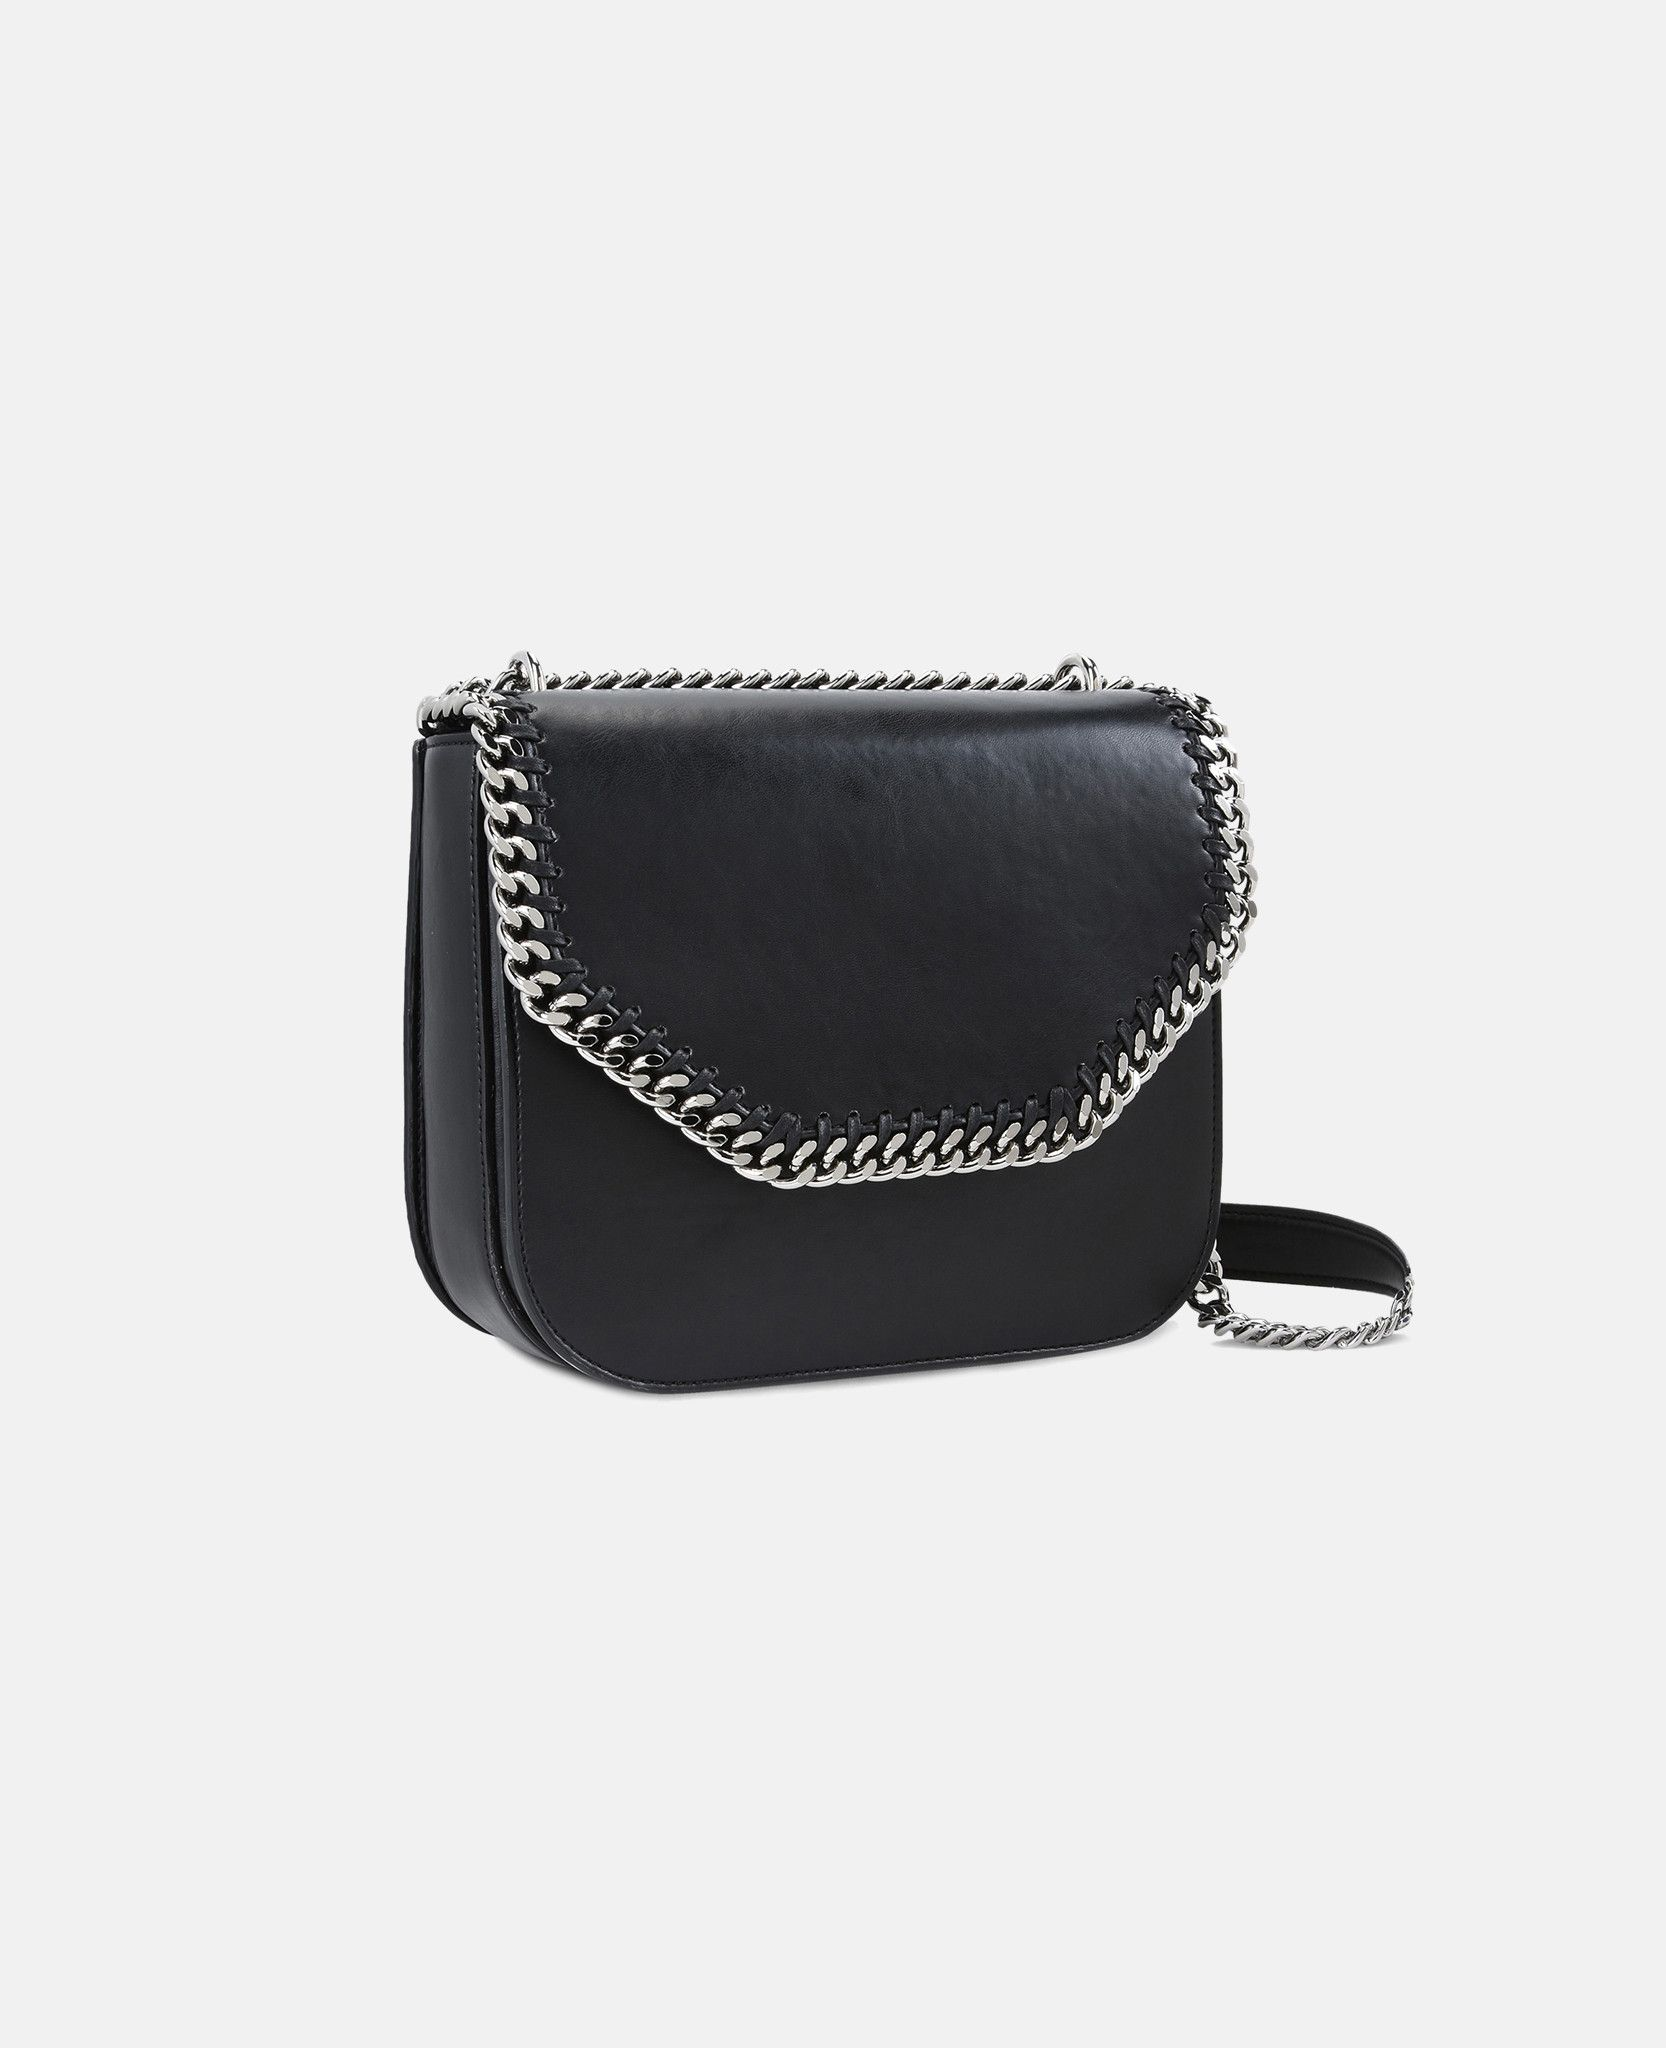 02d7dd3bbf3 Black Falabella Box Shoulder Bag - STELLA MCCARTNEY